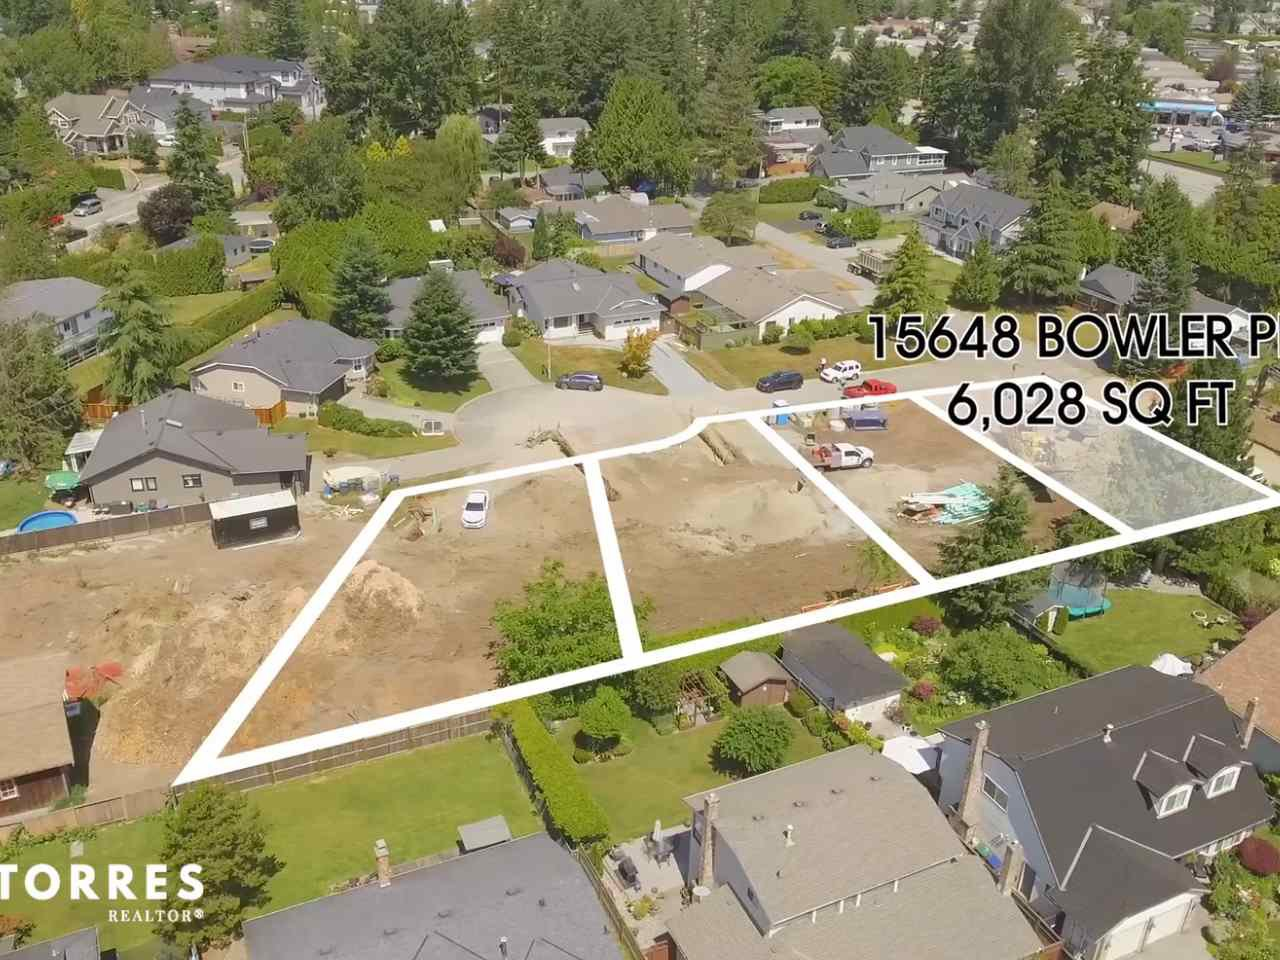 Main Photo: 15648 BOWLER Place in Surrey: King George Corridor Land for sale (South Surrey White Rock)  : MLS®# R2384984